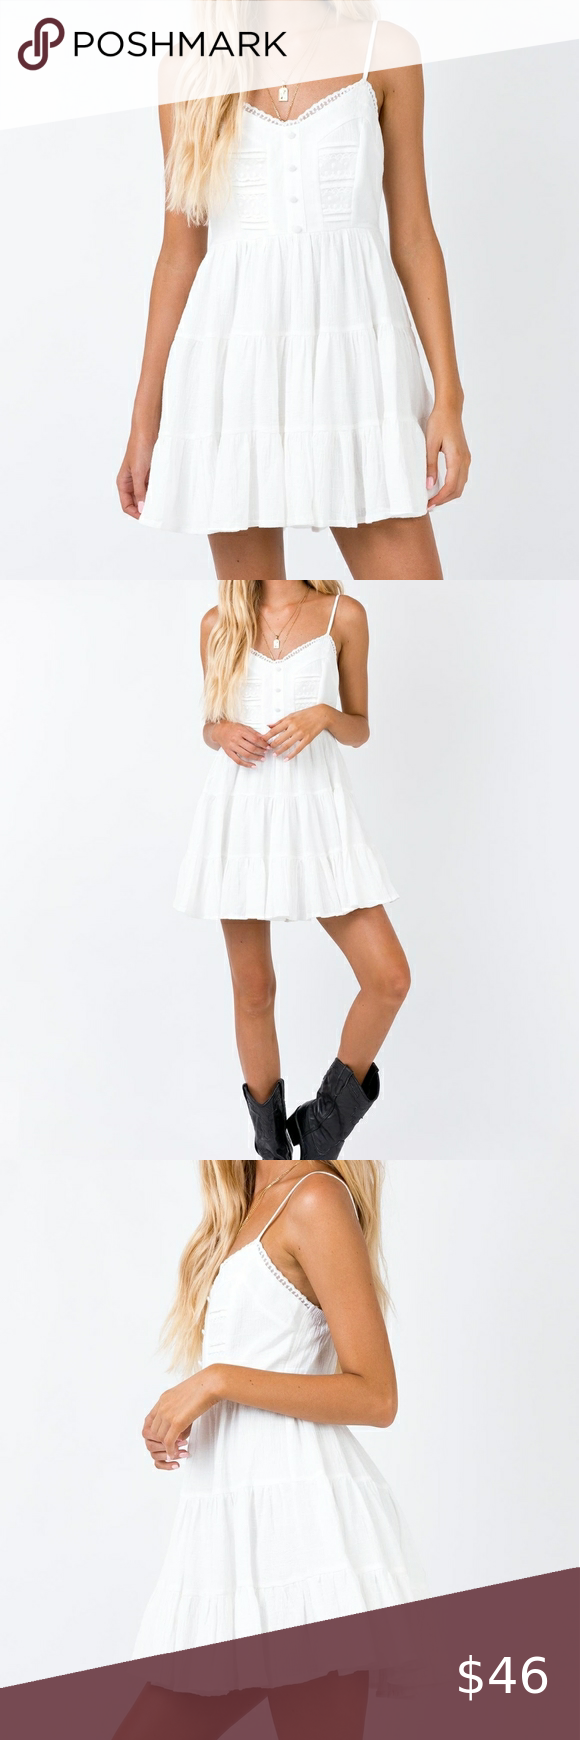 Princess Polly Dlaney White Lace Tiered Mini Dress White Mini Dress Mini Dress Dresses [ 1740 x 580 Pixel ]